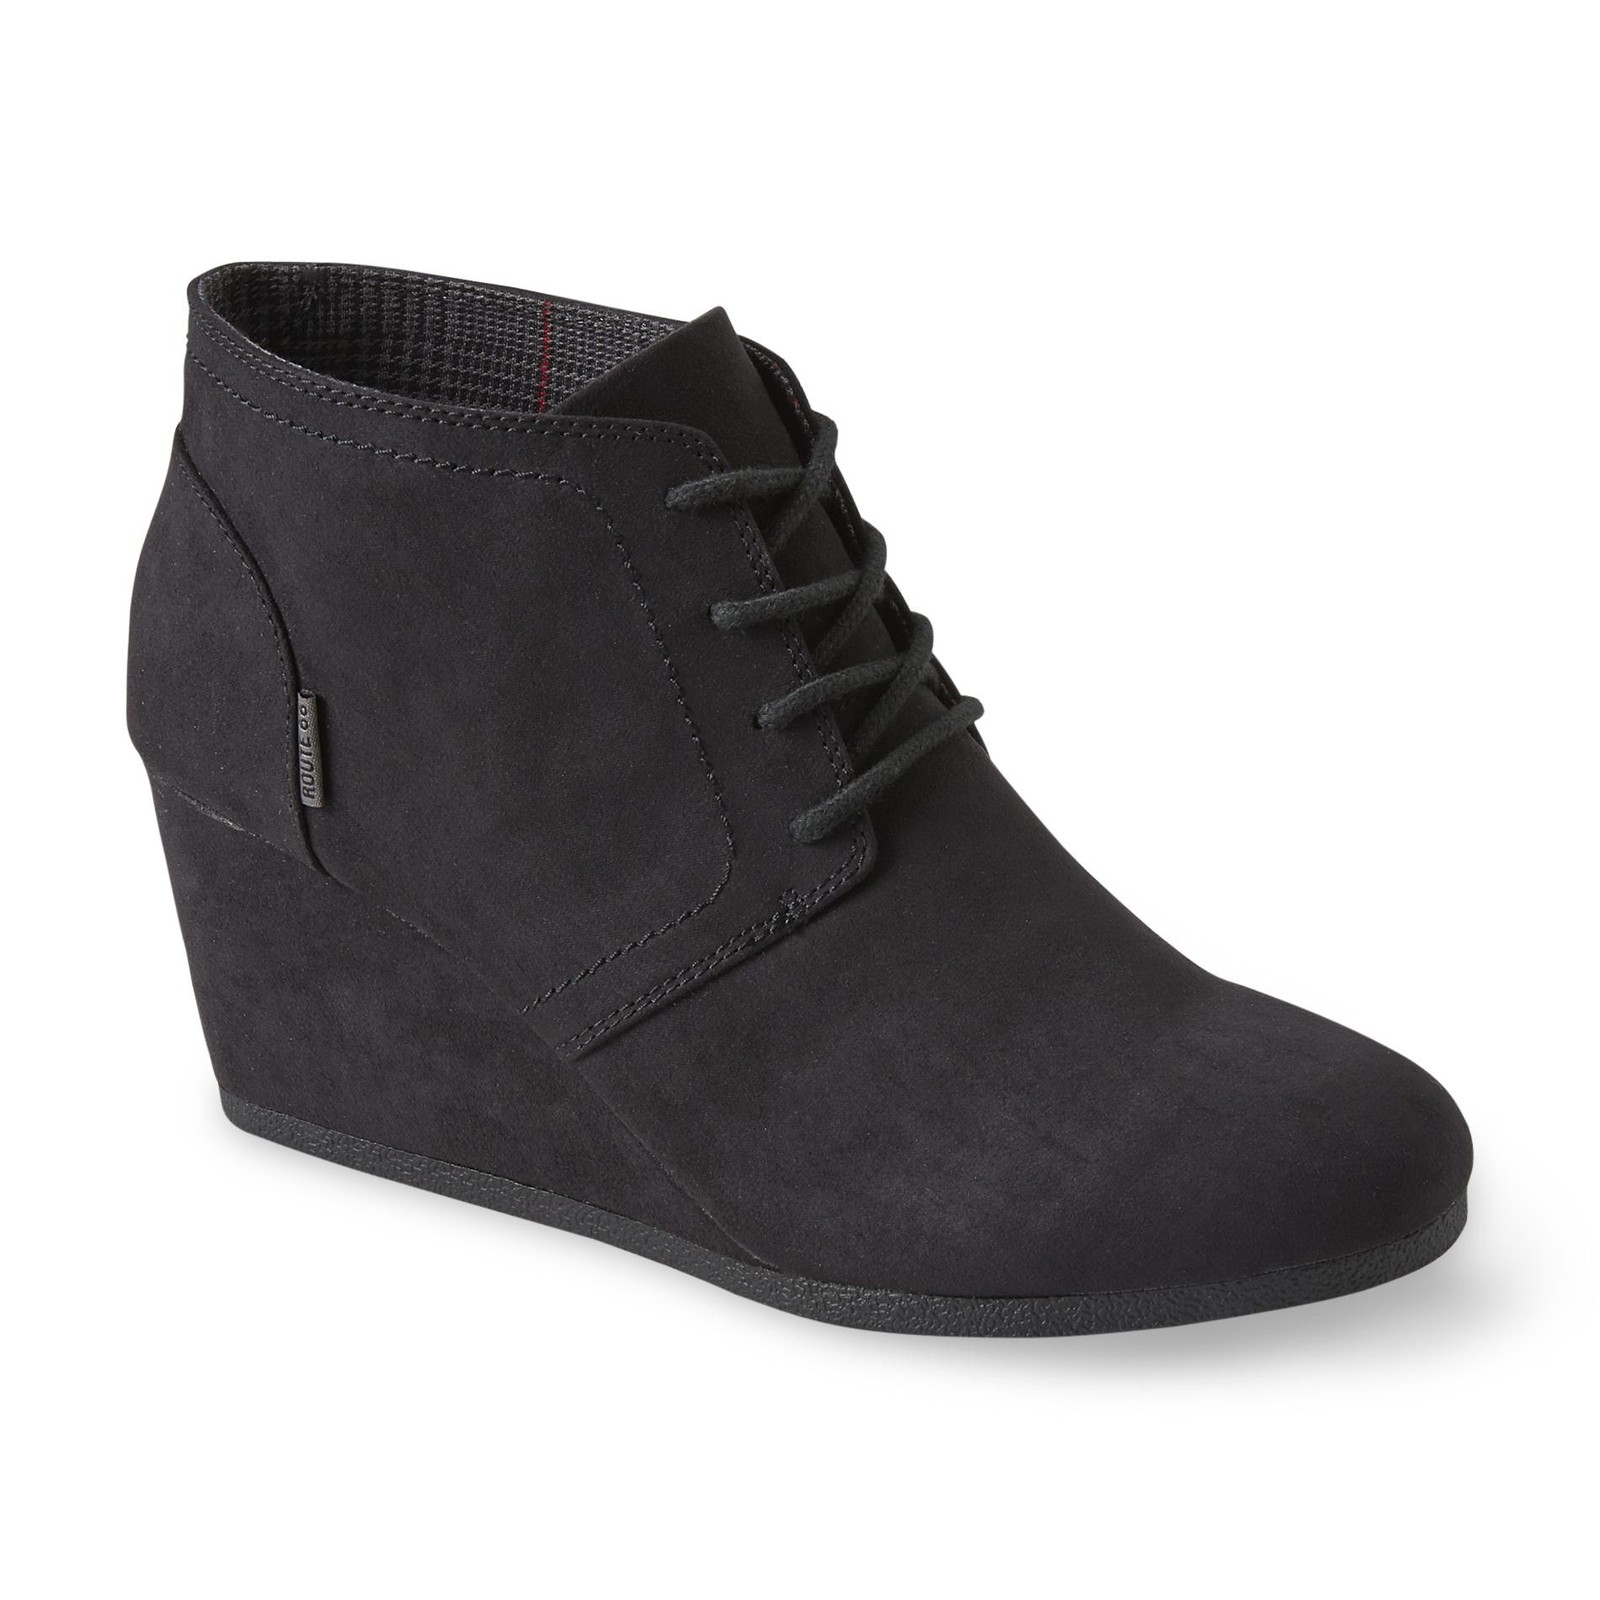 route 66 women's emerson black wedge bootie - clothing, shoes